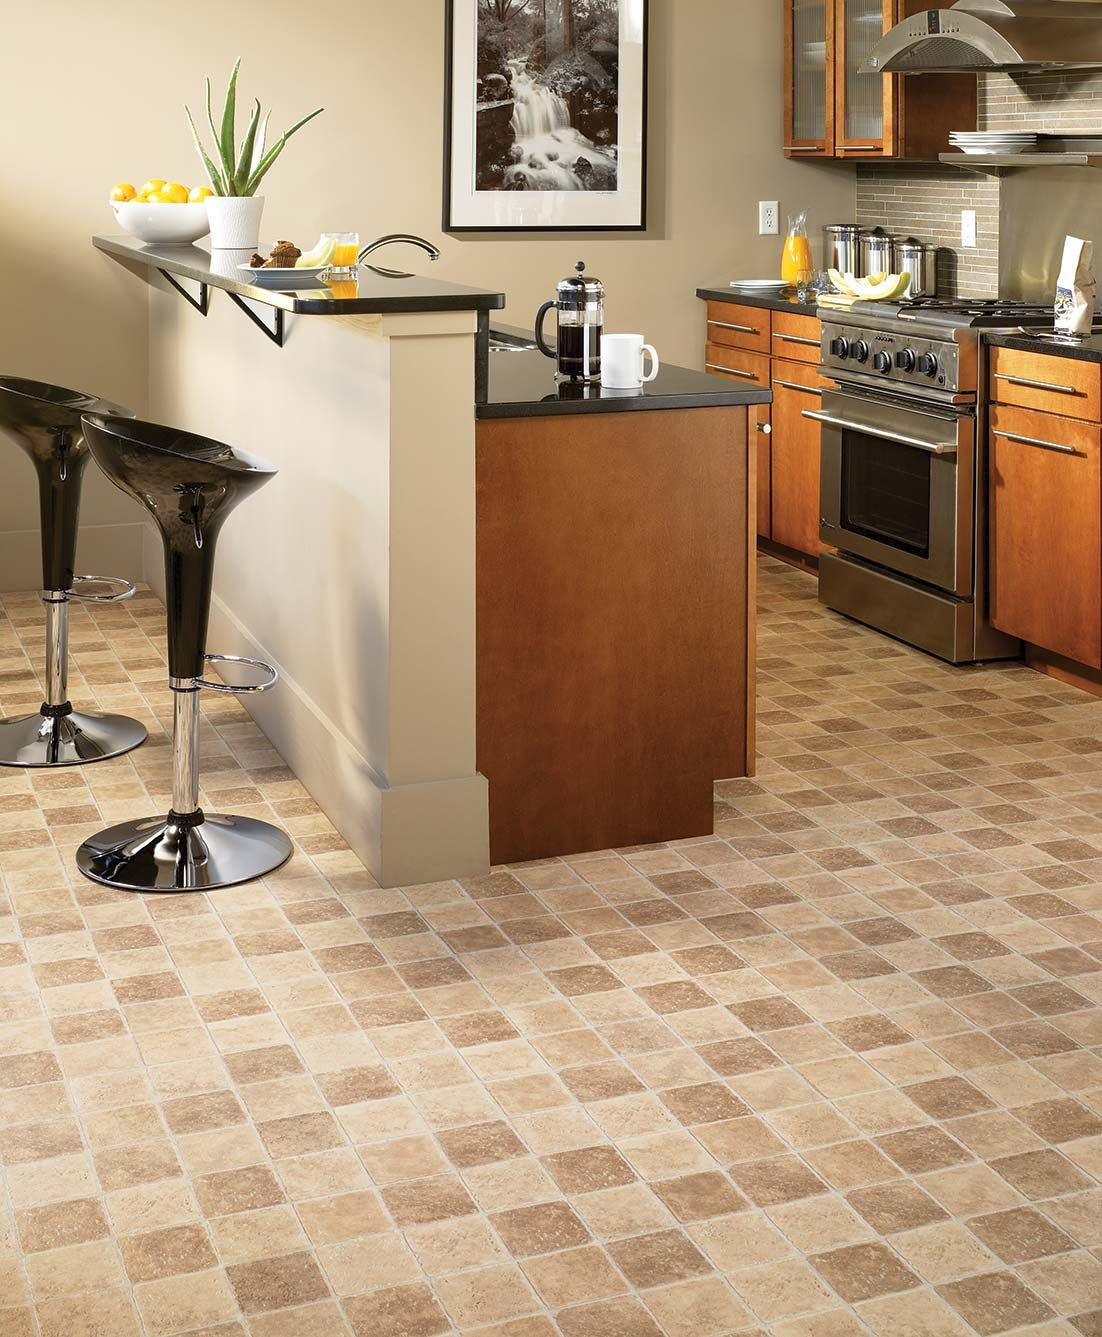 Vinyl flooring has enjoyed great improvements in the